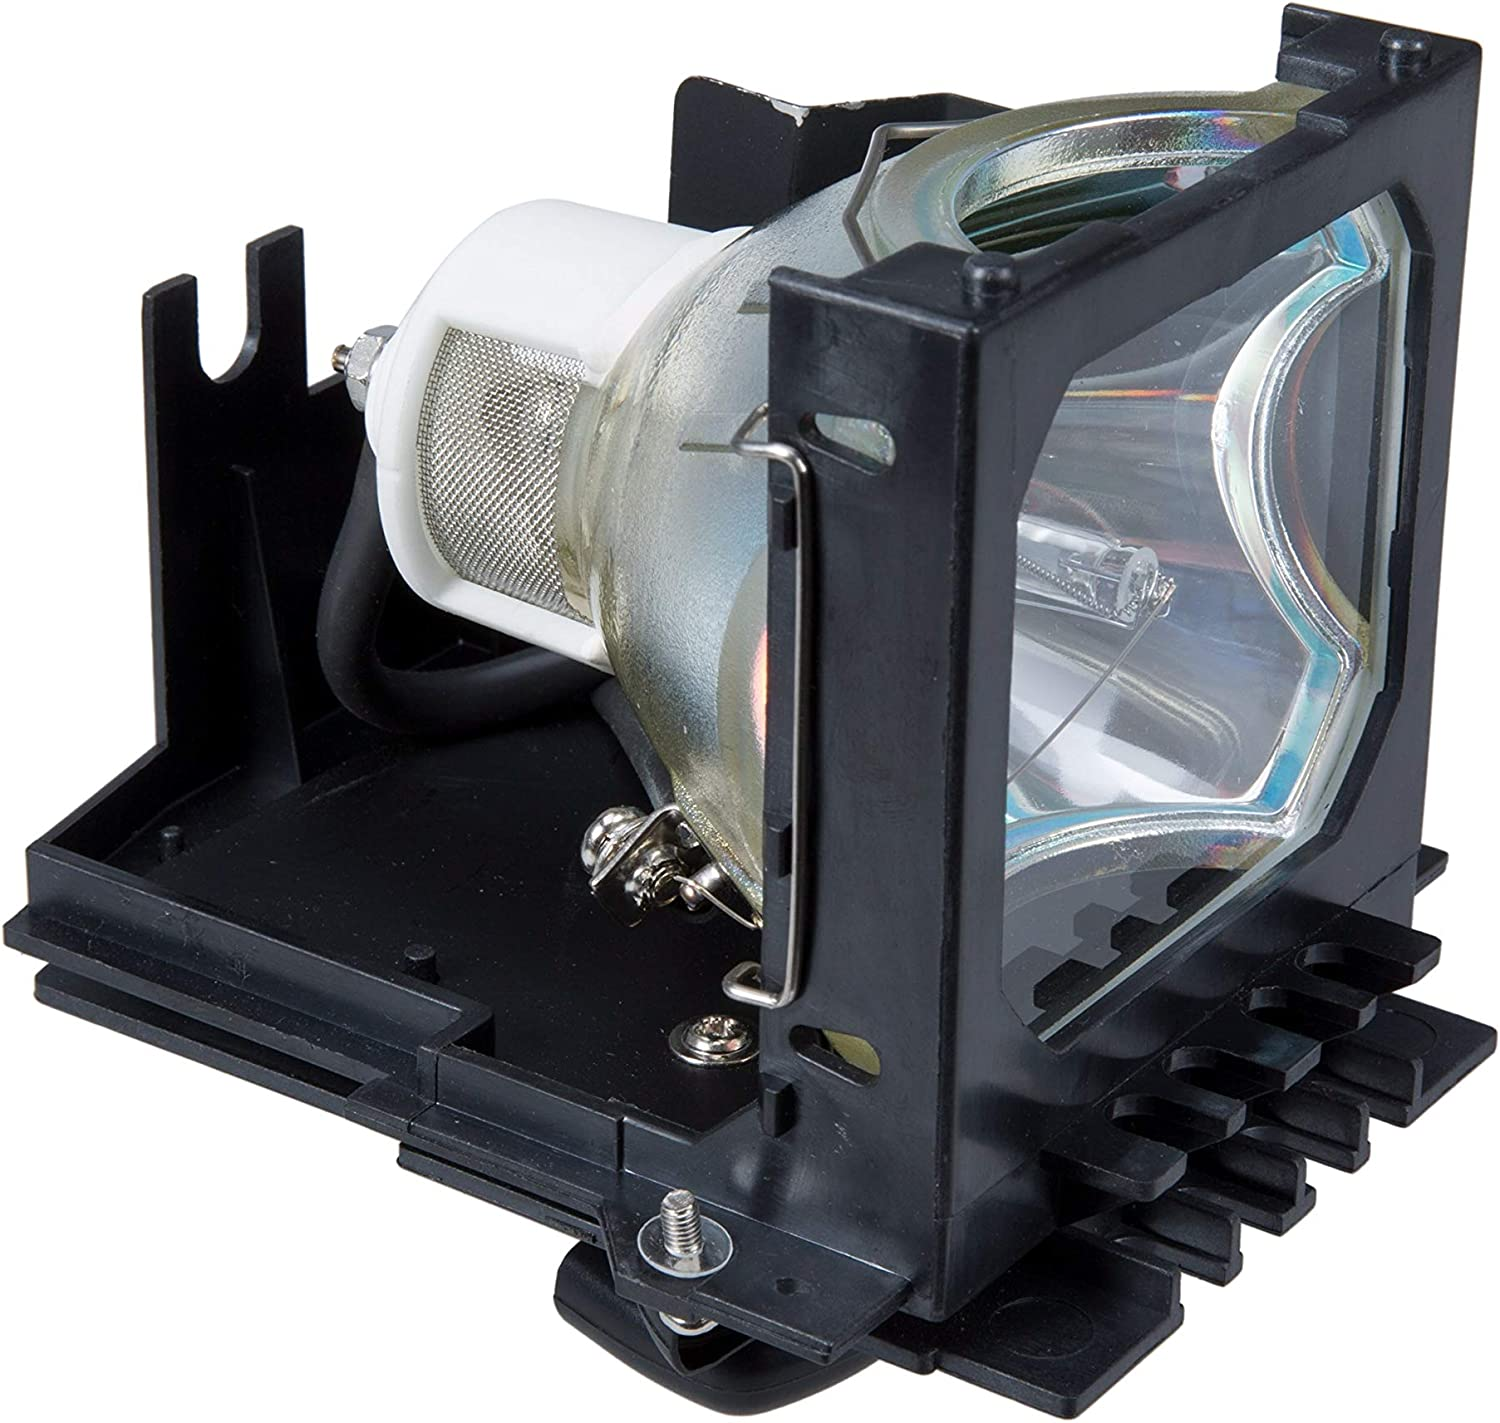 DT00601 Replacement Projector Lamp Bulb with Housing for Hitachi CP-SX1350 // CP-SX1350W // CP-X1230 // CP-X1250 // CP-X1350